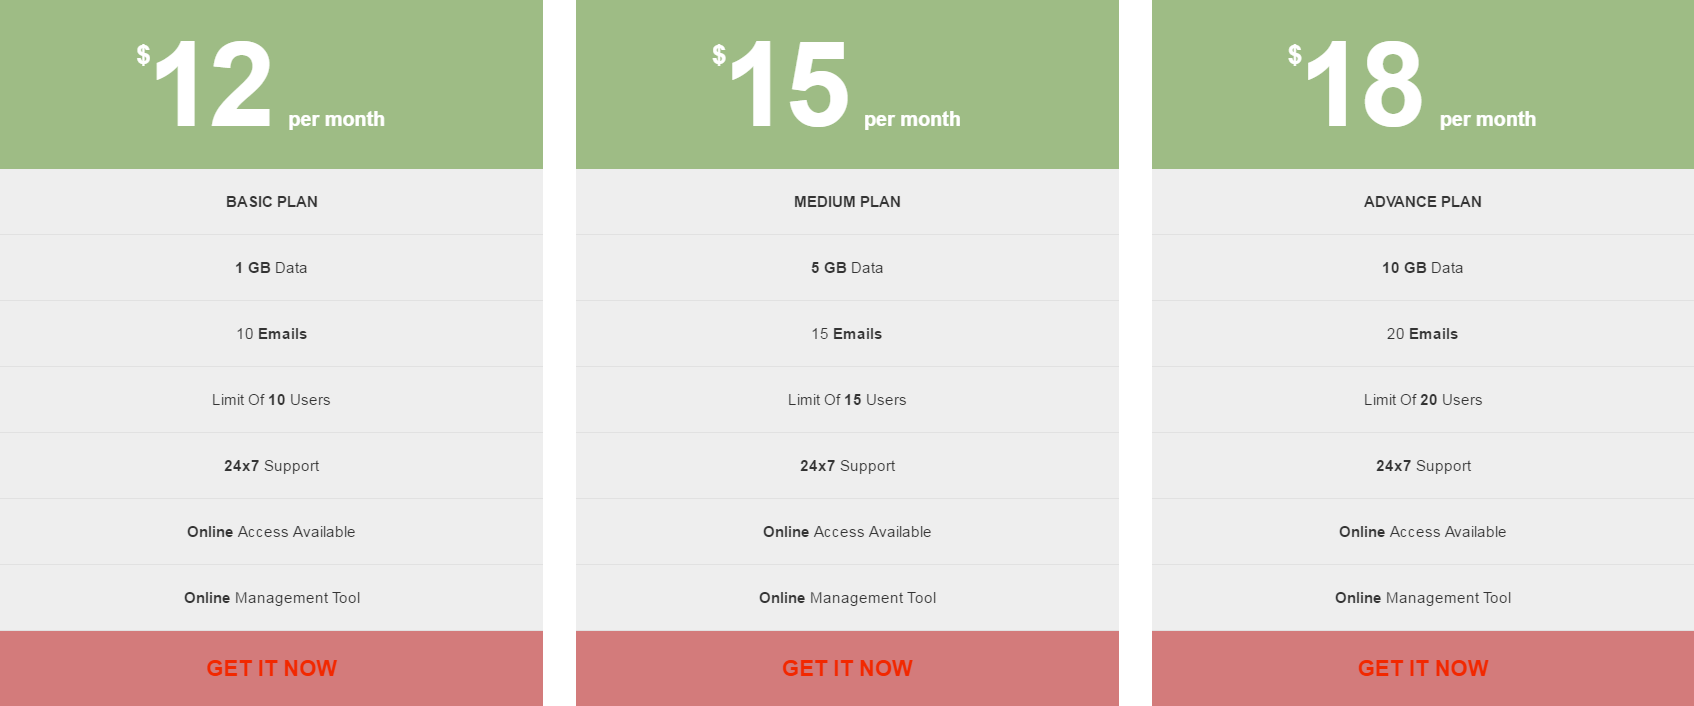 Bootstrap Pricing Table Widget